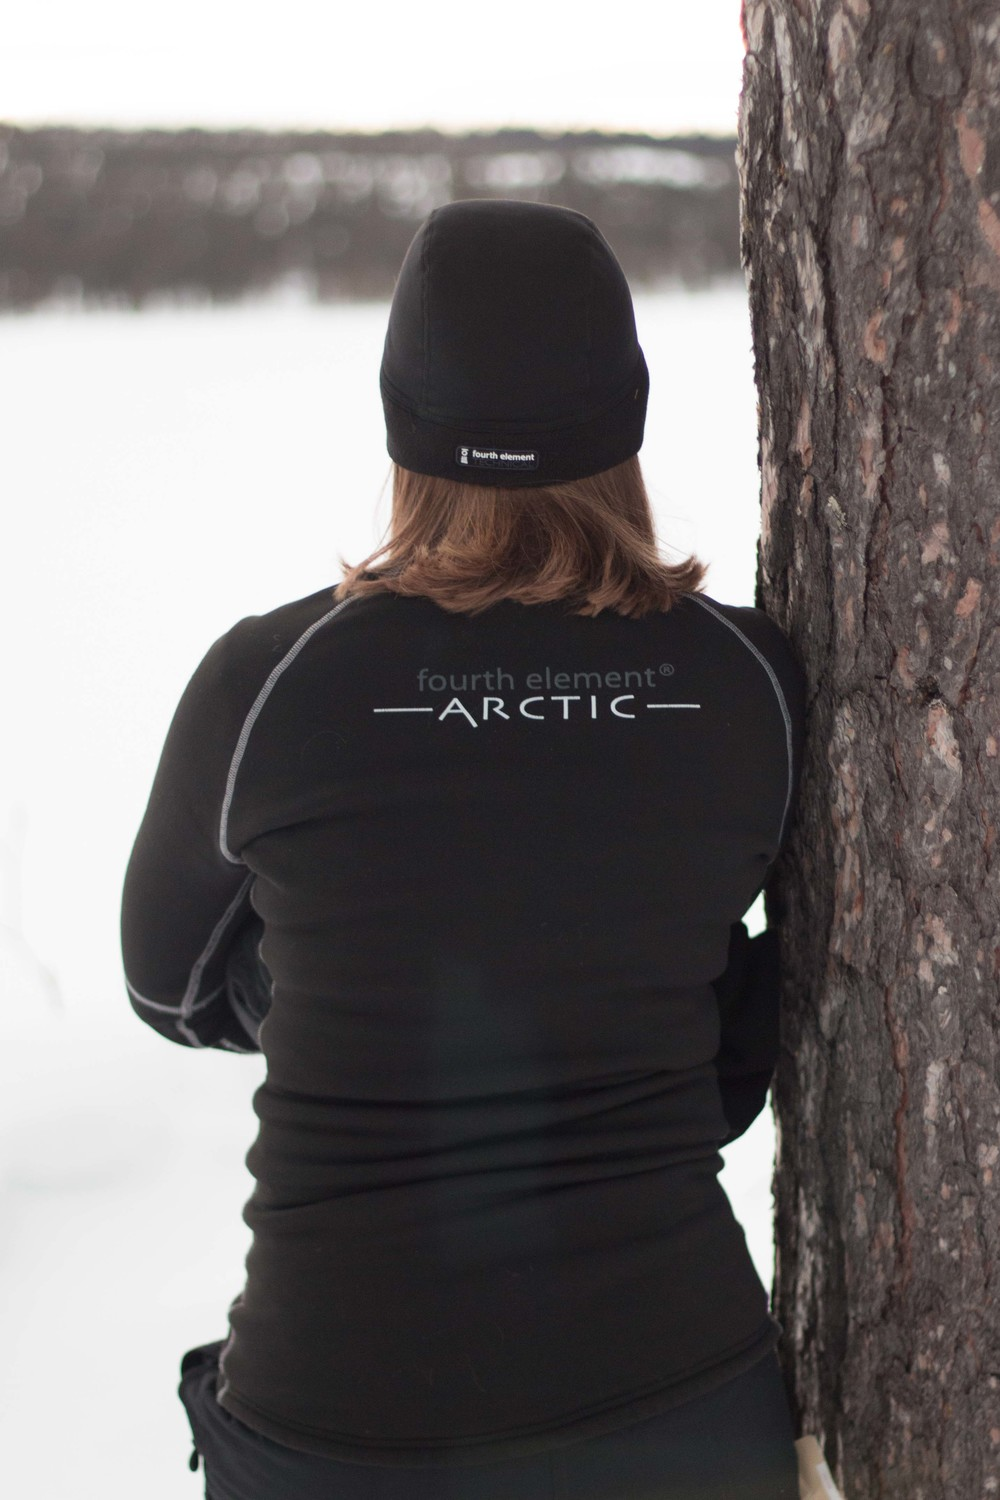 Fourht Element Arctic drysuit undergarments - not just for diving